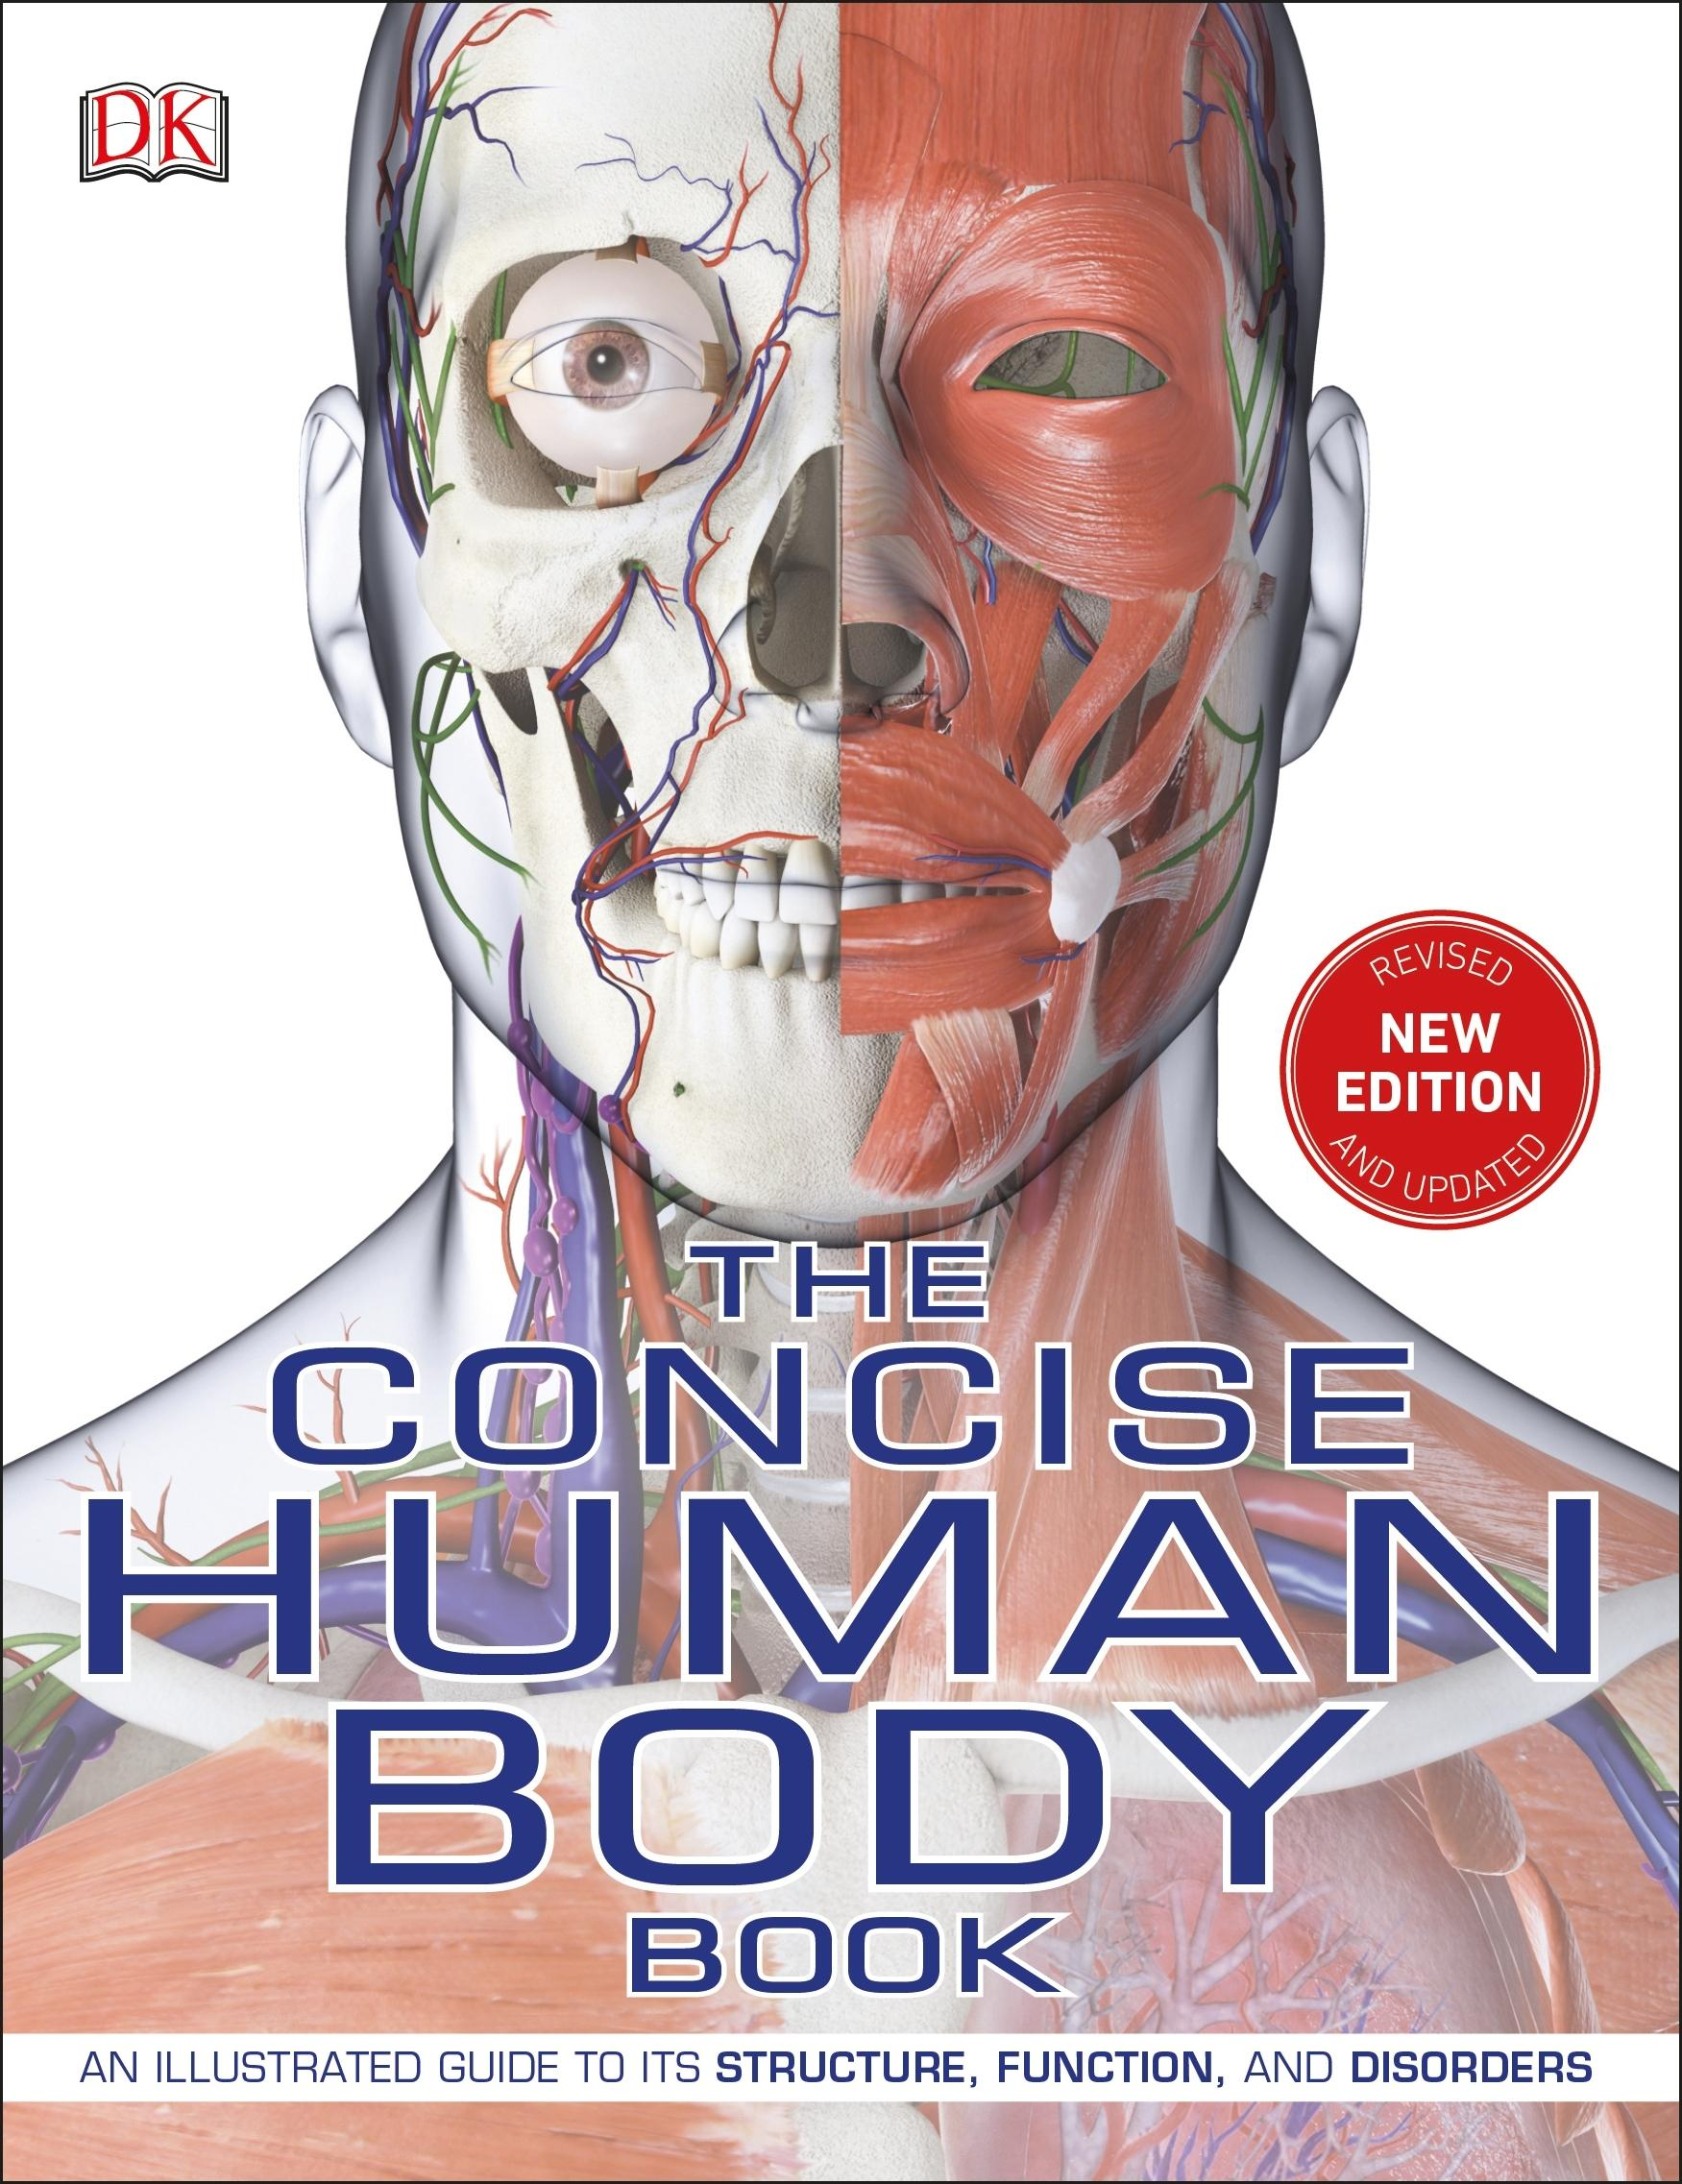 The Concise Human Body Book: An illustrated guide to its structure, function and disorders by Kinder Dorling